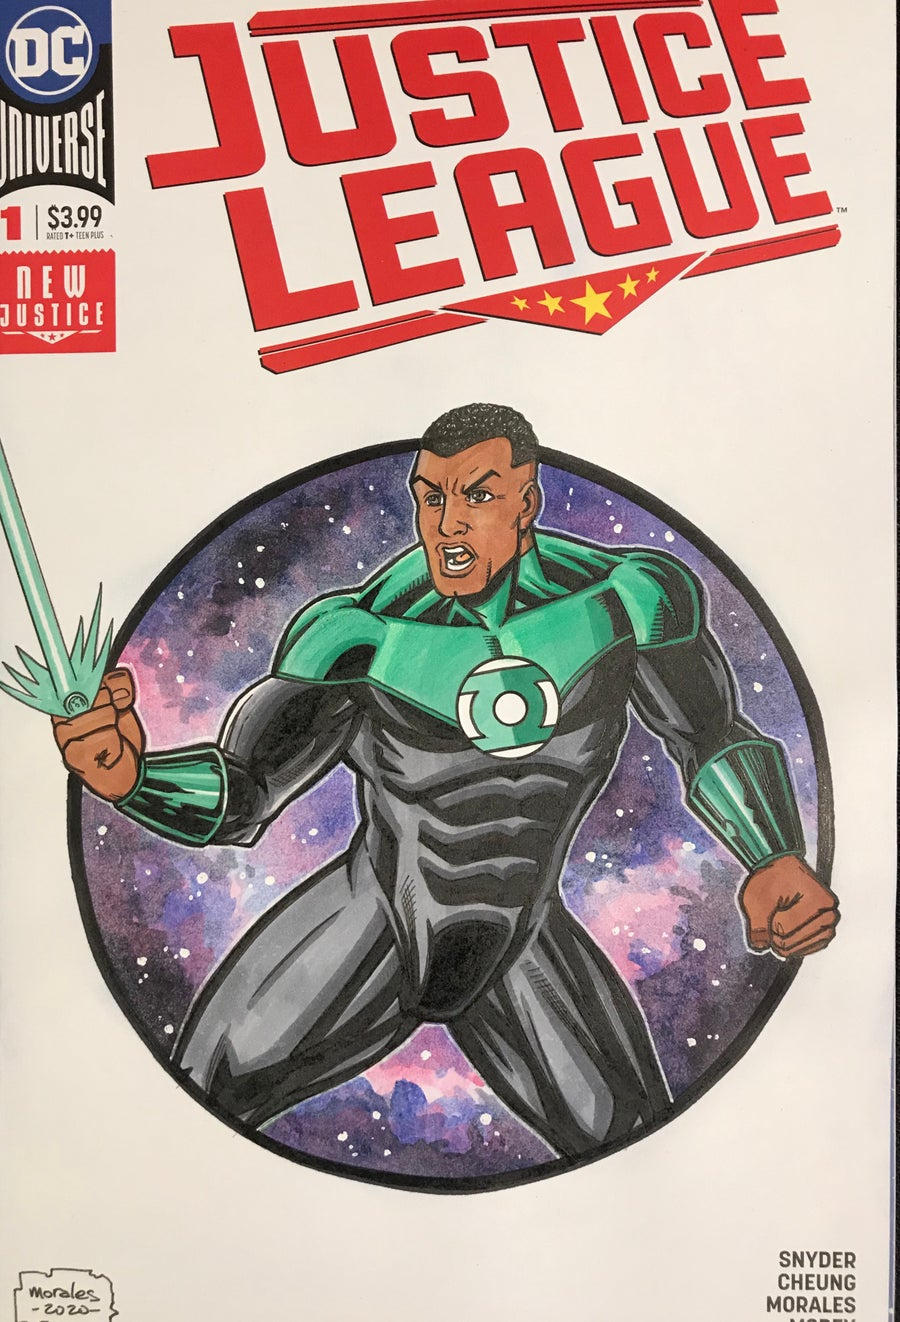 Image of Justice League Green Lantern Sketchcover